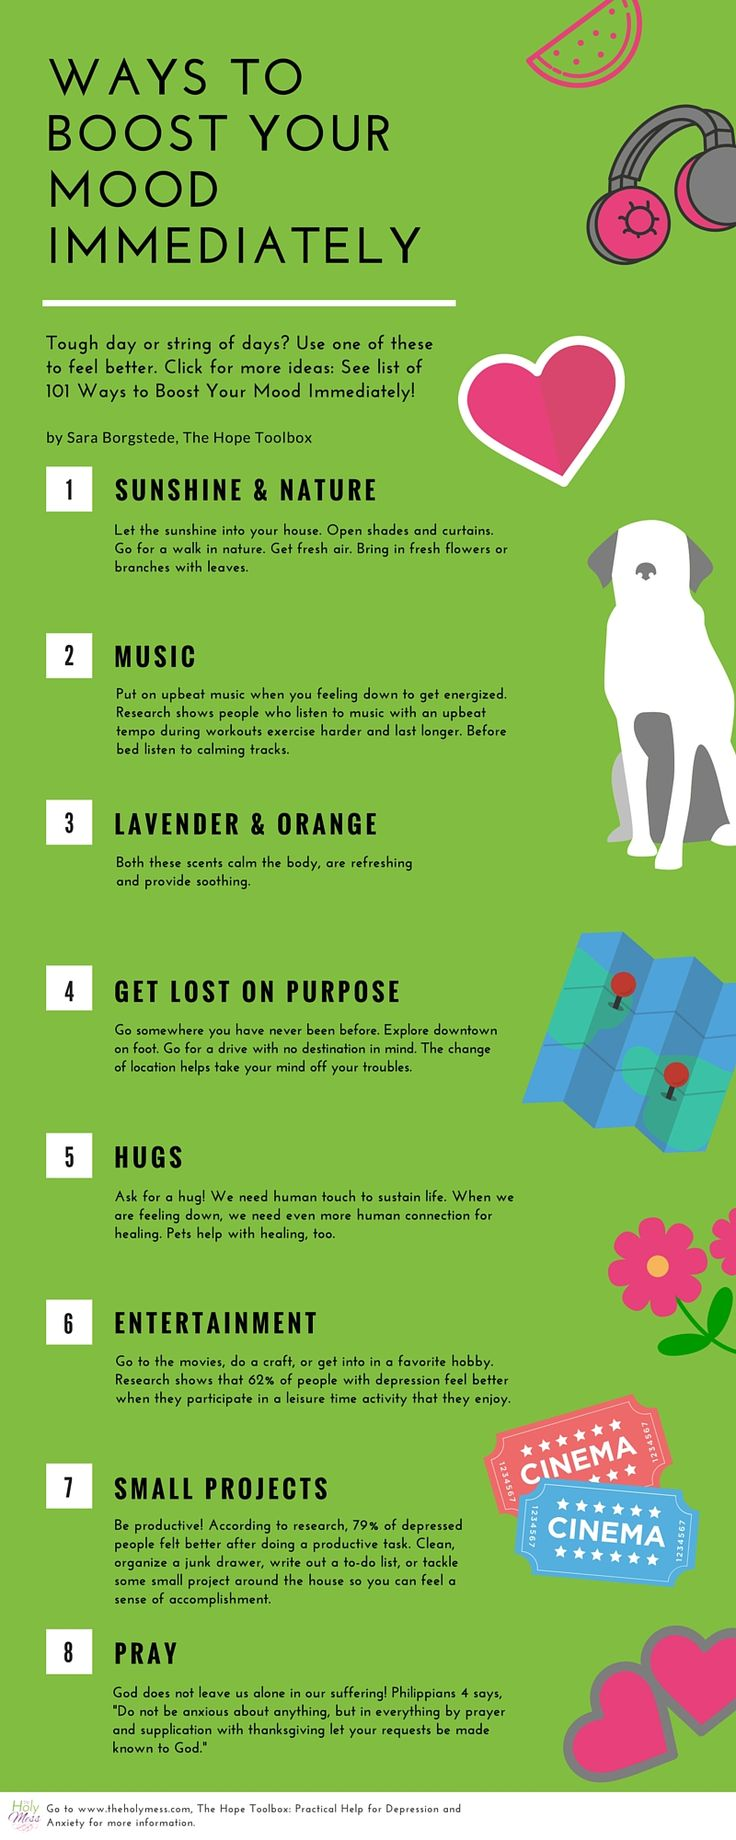 Feeling down? Here's how to lift your mood fast. Click for 101 ways to Boost Your Mood Immediately. Which is your favorite? http://www.mannyyoung.co.uk/